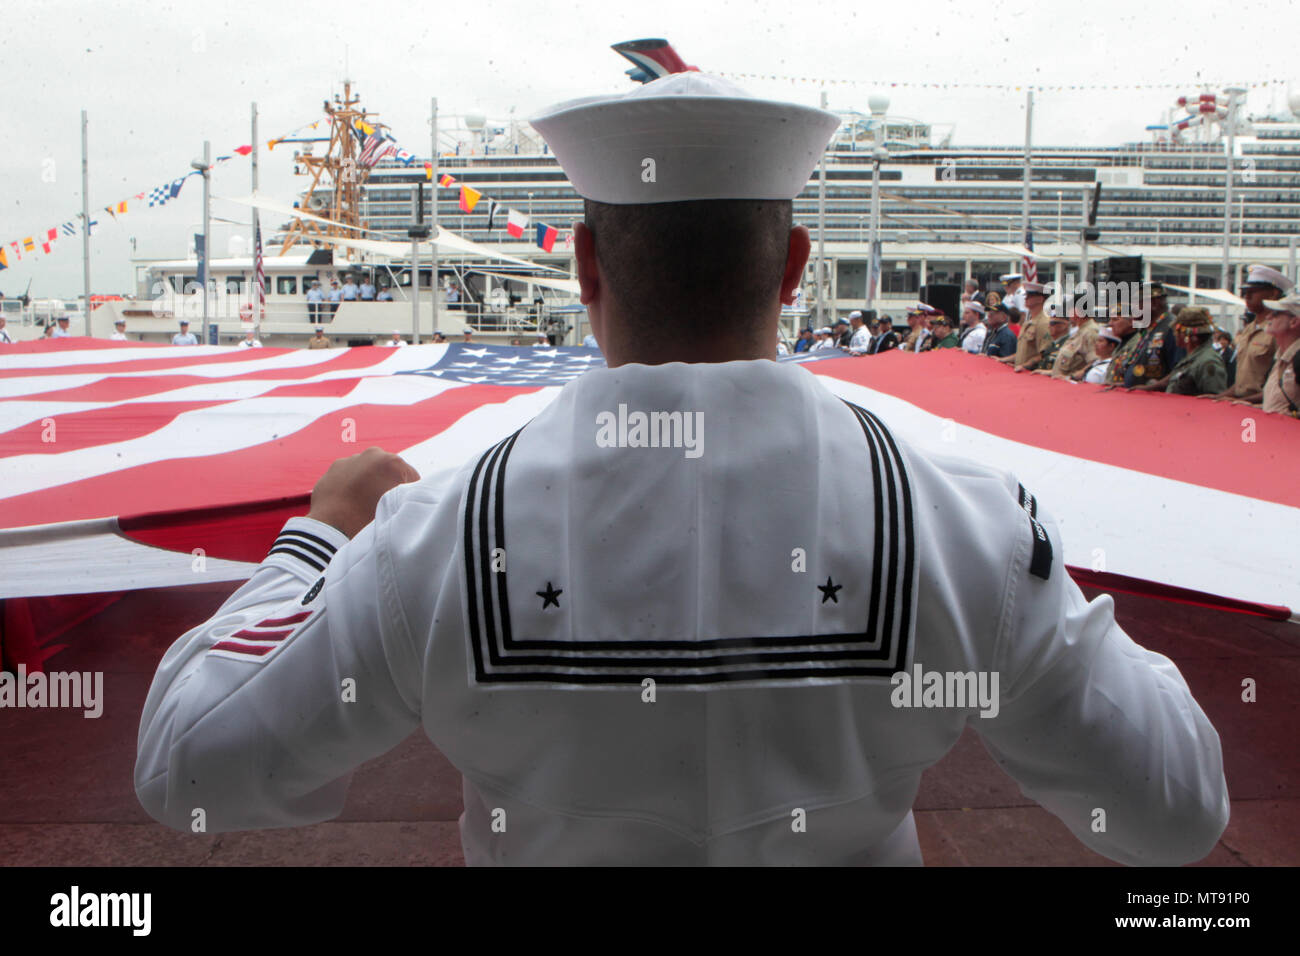 New York, NY, USA. 28th May, 2018. United States Soldiers comprised by representative of the Army, Navy, Airforce & Marines, along with participating members of the audience, unfurl a huge American flag as they attend the 2018 Memorial Day Ceremony held aboard the U.S.S Intrepid Sea, Air, Space Museum Complex on May 28, 2018 in New York City. Credit: Mpi43/Media Punch/Alamy Live News - Stock Image